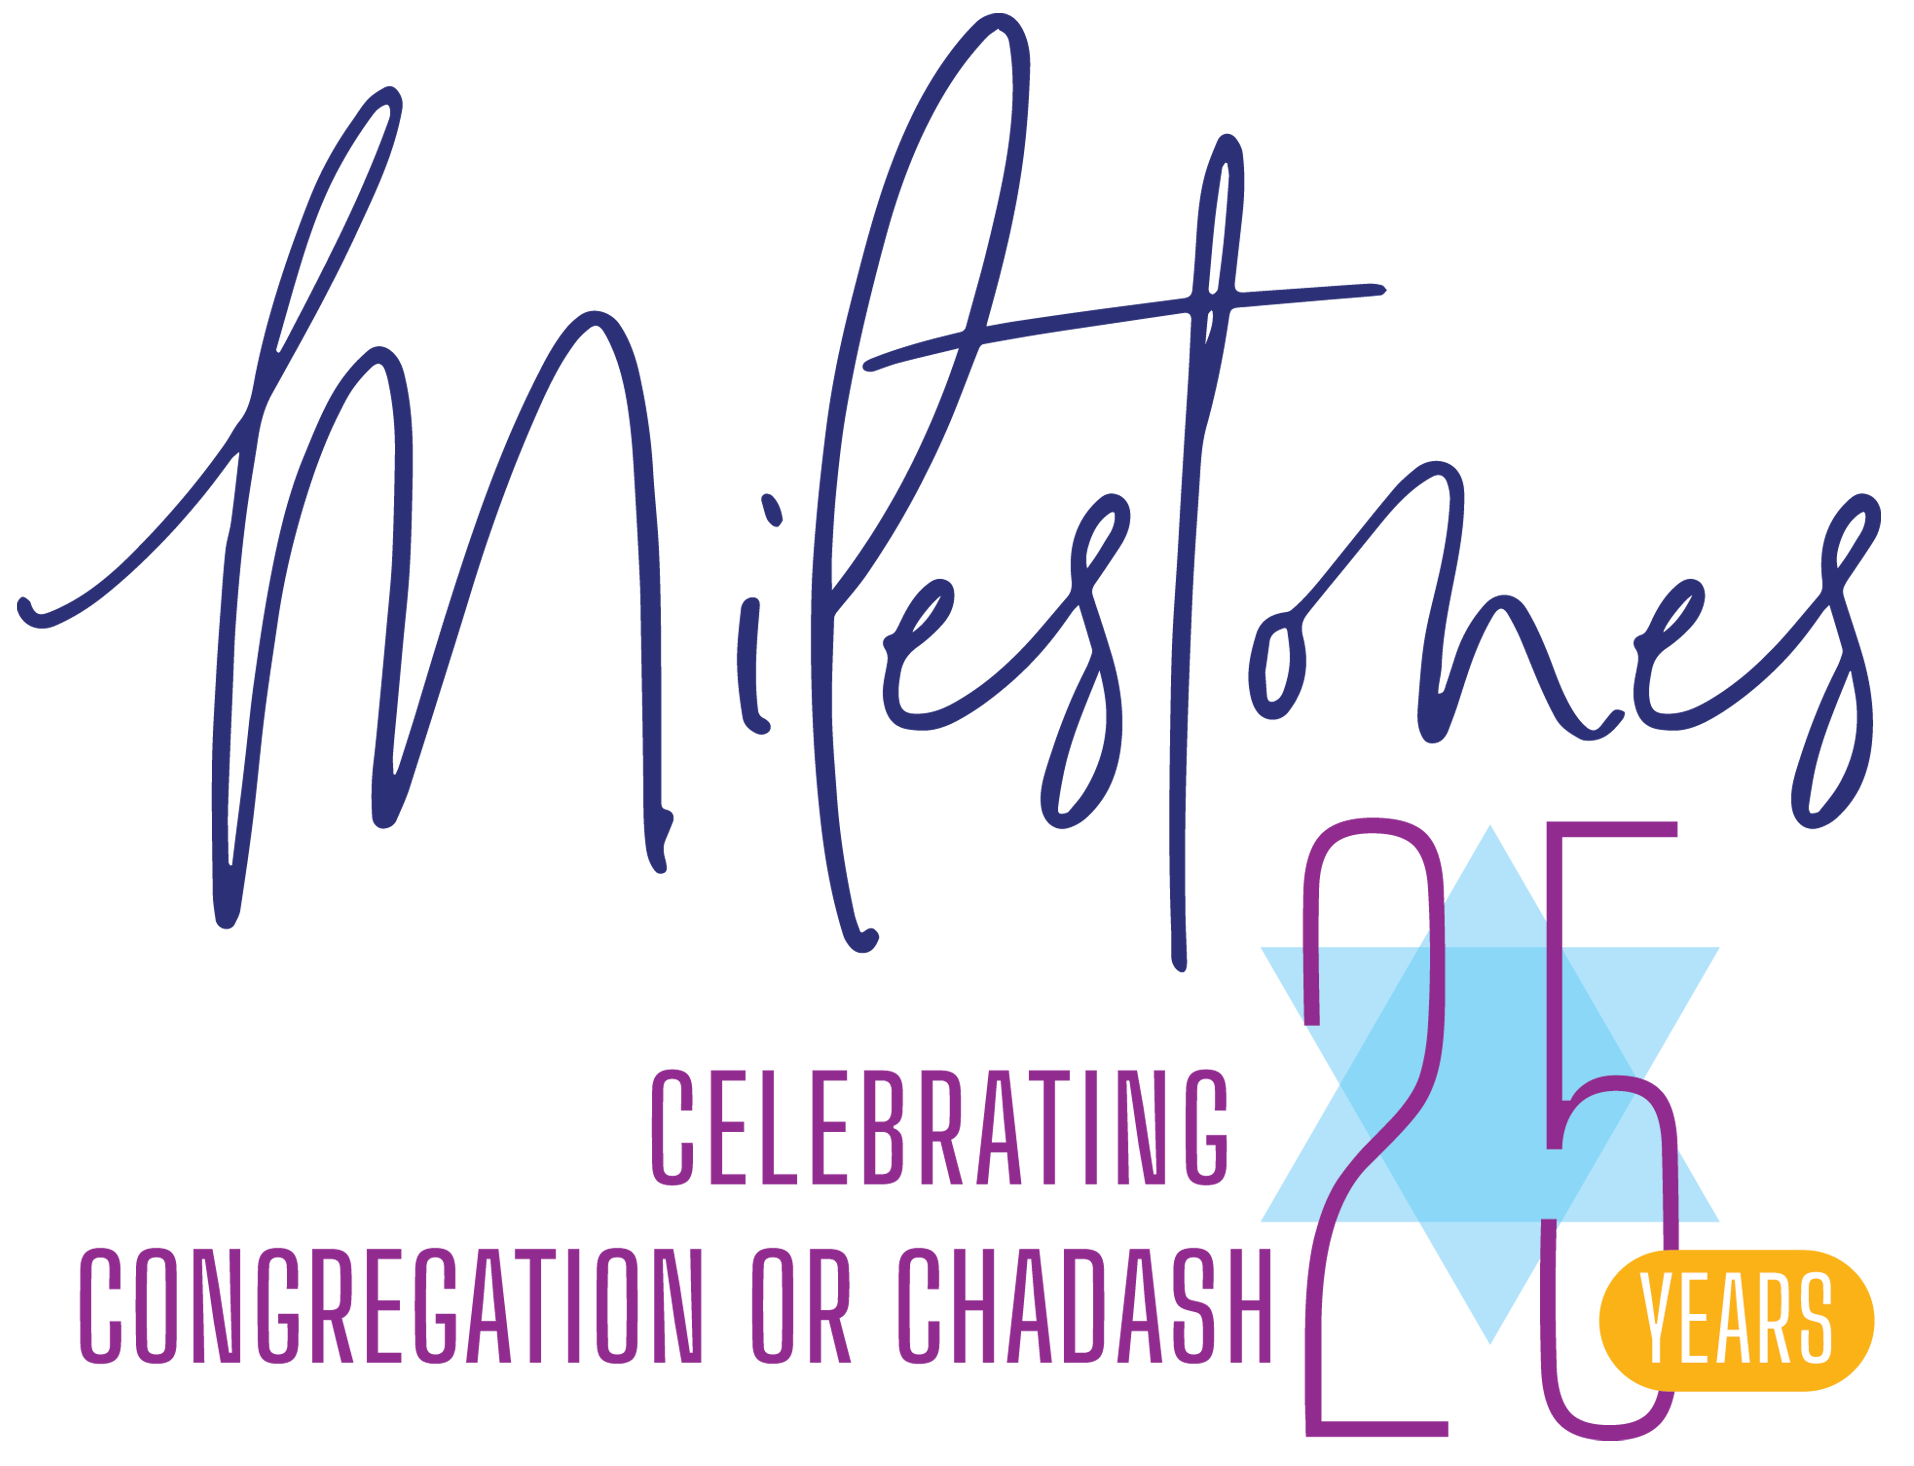 Milestones: Celebrating 25 Years